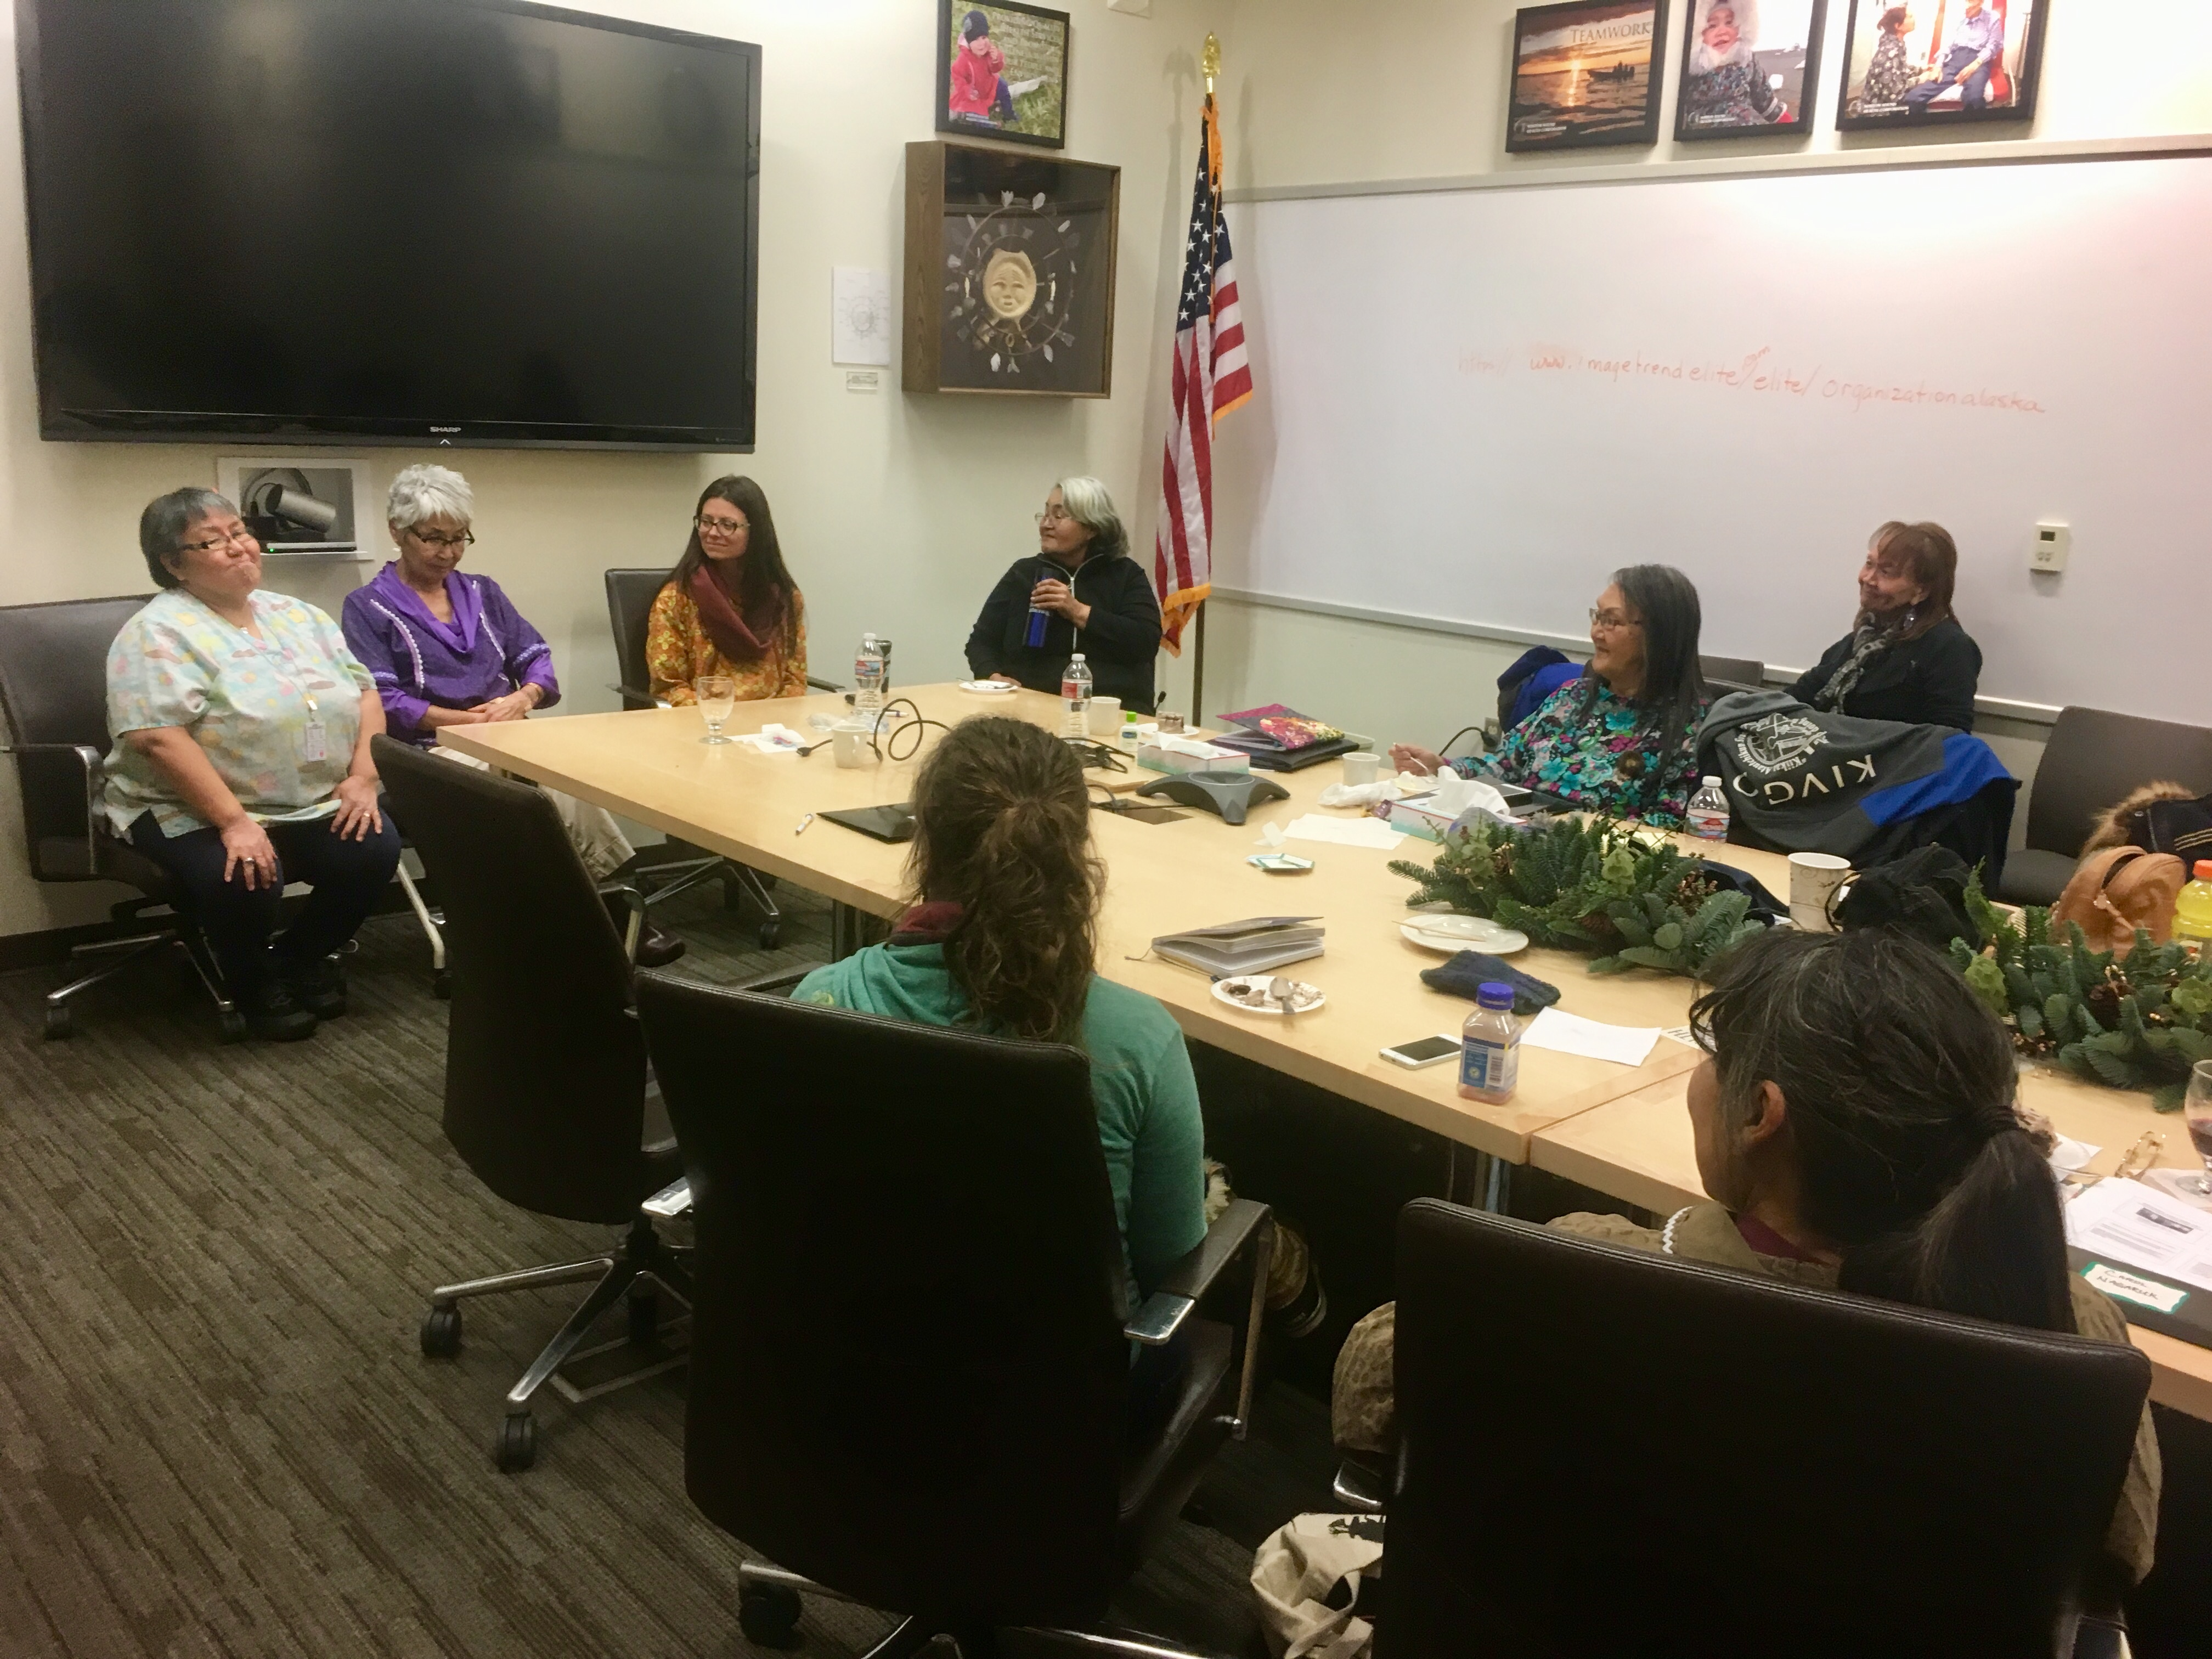 Traditional healers spoke on a panel at the the 2nd Norton Sound Indigenous Women's Gathering, held at NSHC in Nome in December 2017.